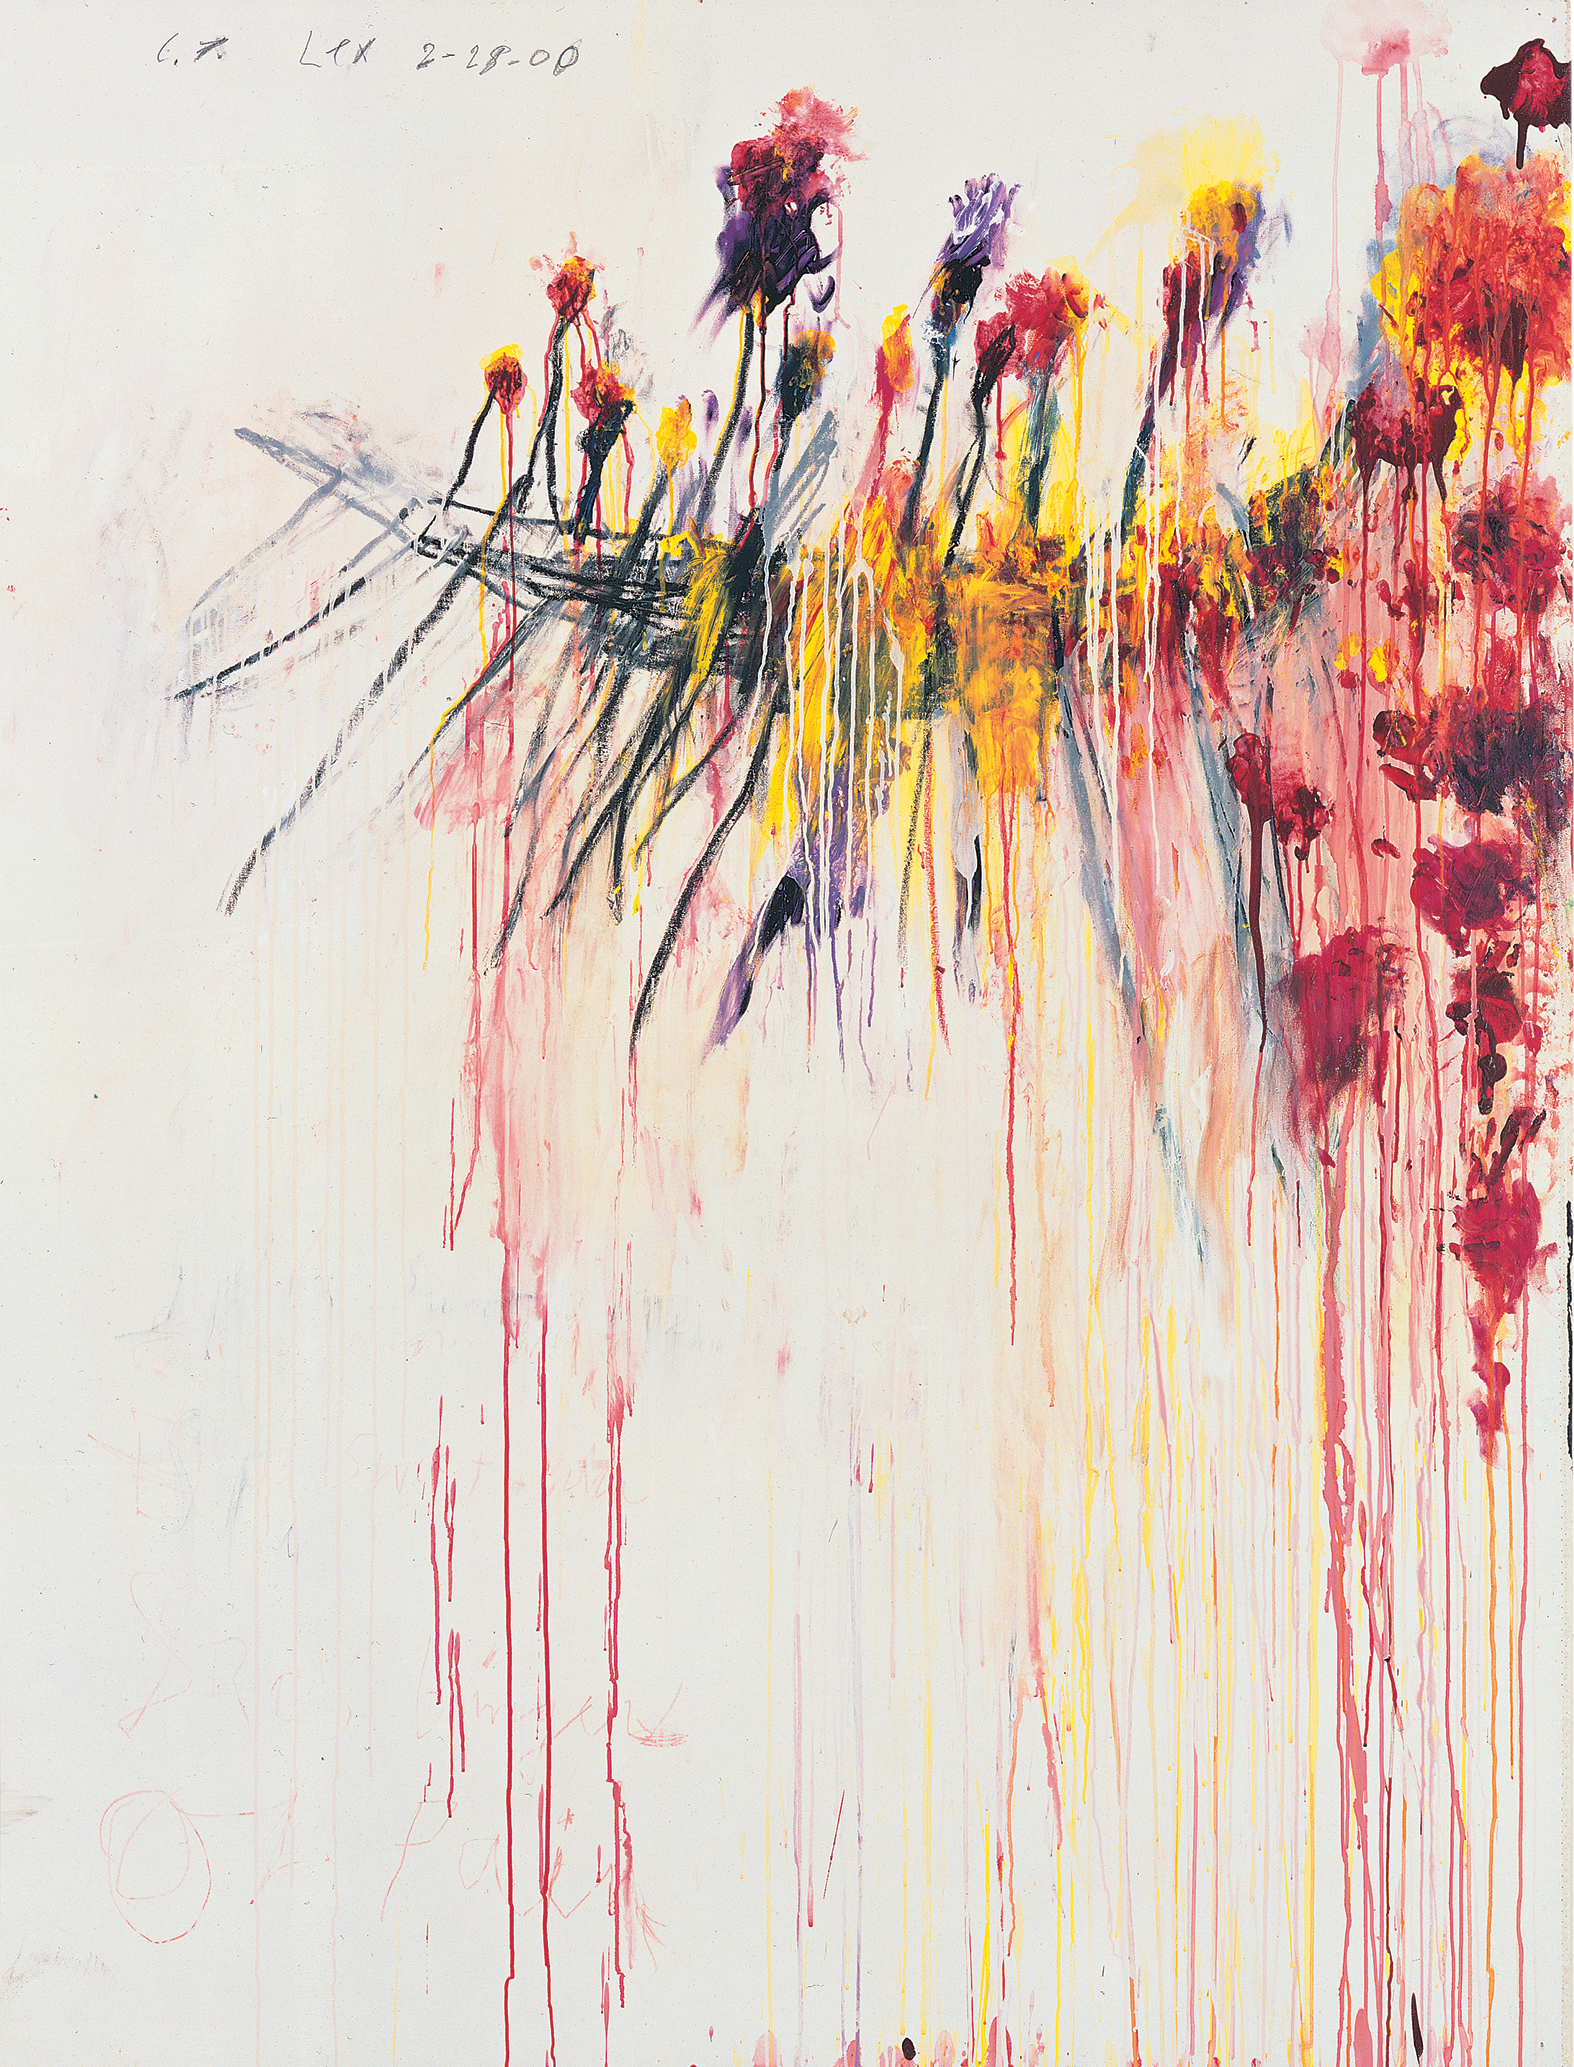 Coronation of Sesostris, Part V (2000), by Cy Twombly. Acrylic, wax crayon and pencil on canvas, 206.1 x 156.5 cm. Pinault Collection. © Pinault Collection / Photo: Robert McKeever.